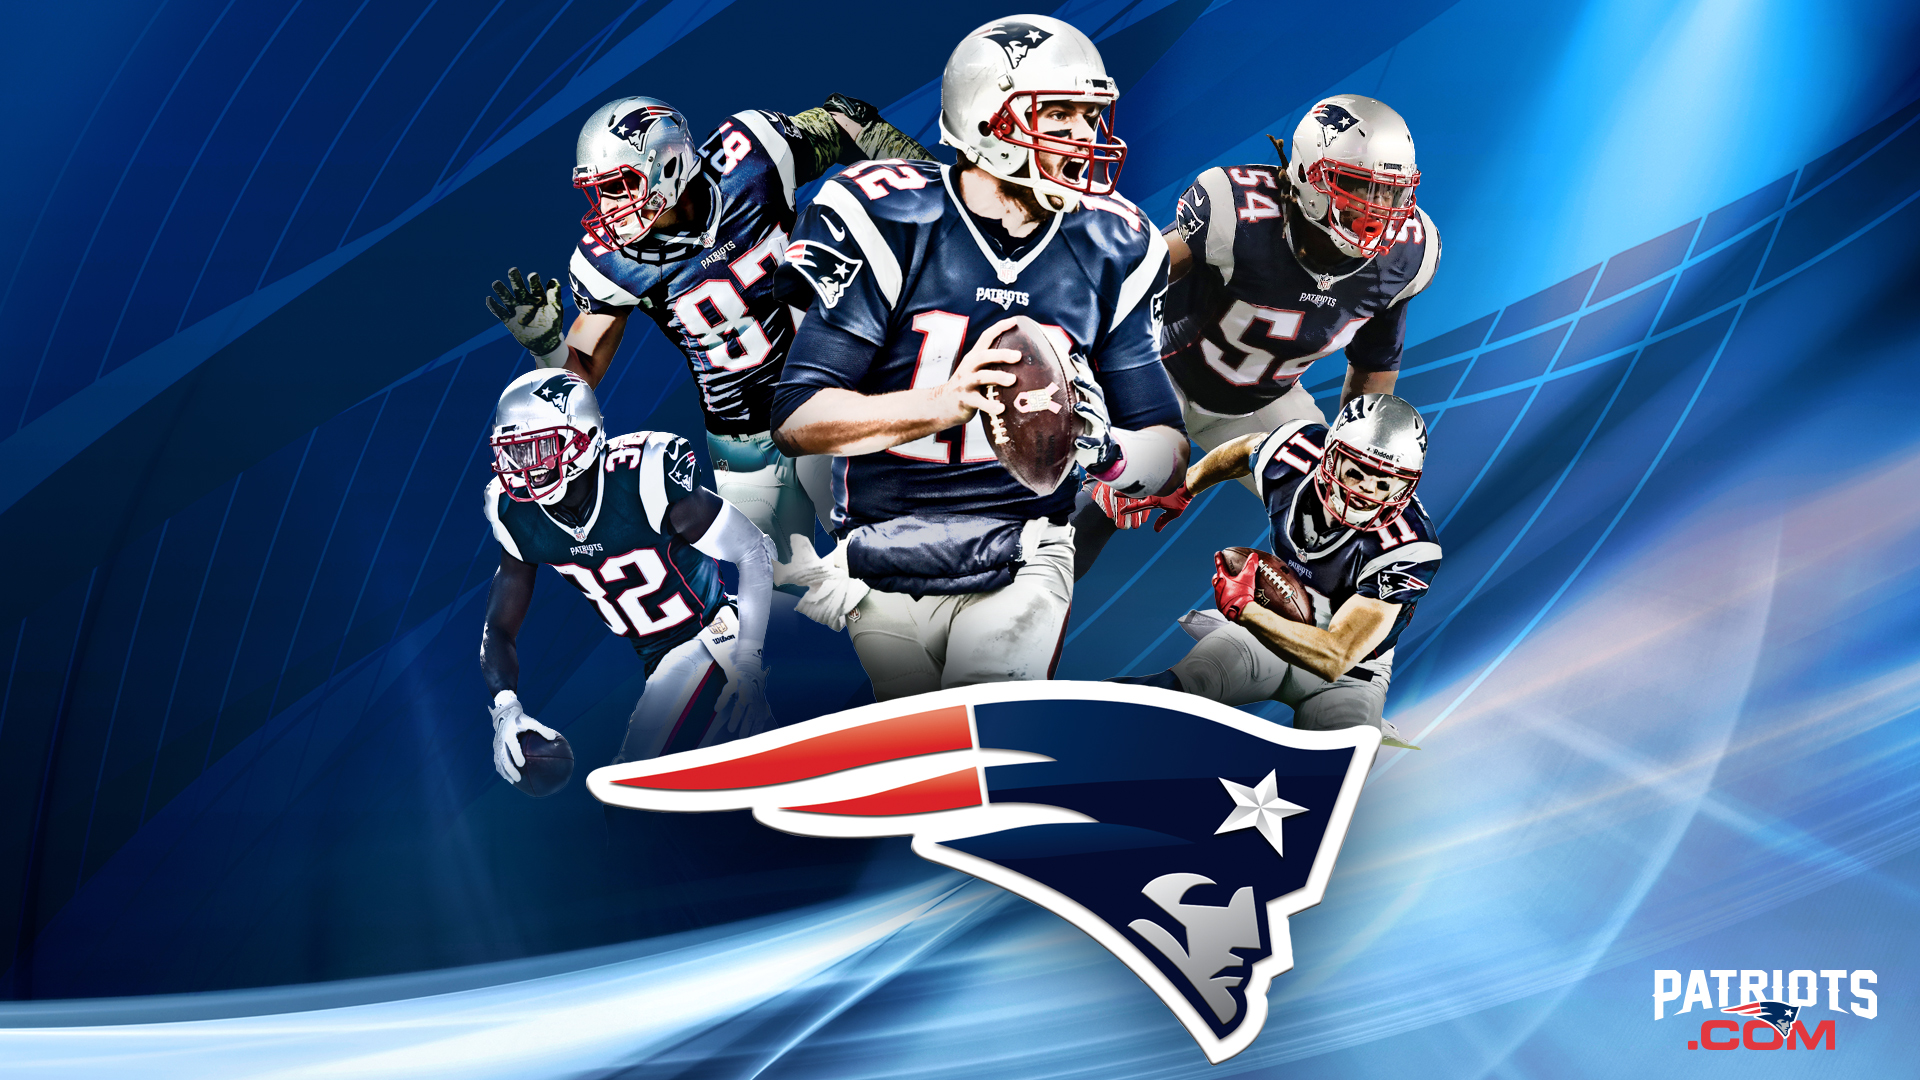 Nfl Football Wallpaper Desktop 52 Images: Official Website Of The New England Patriots